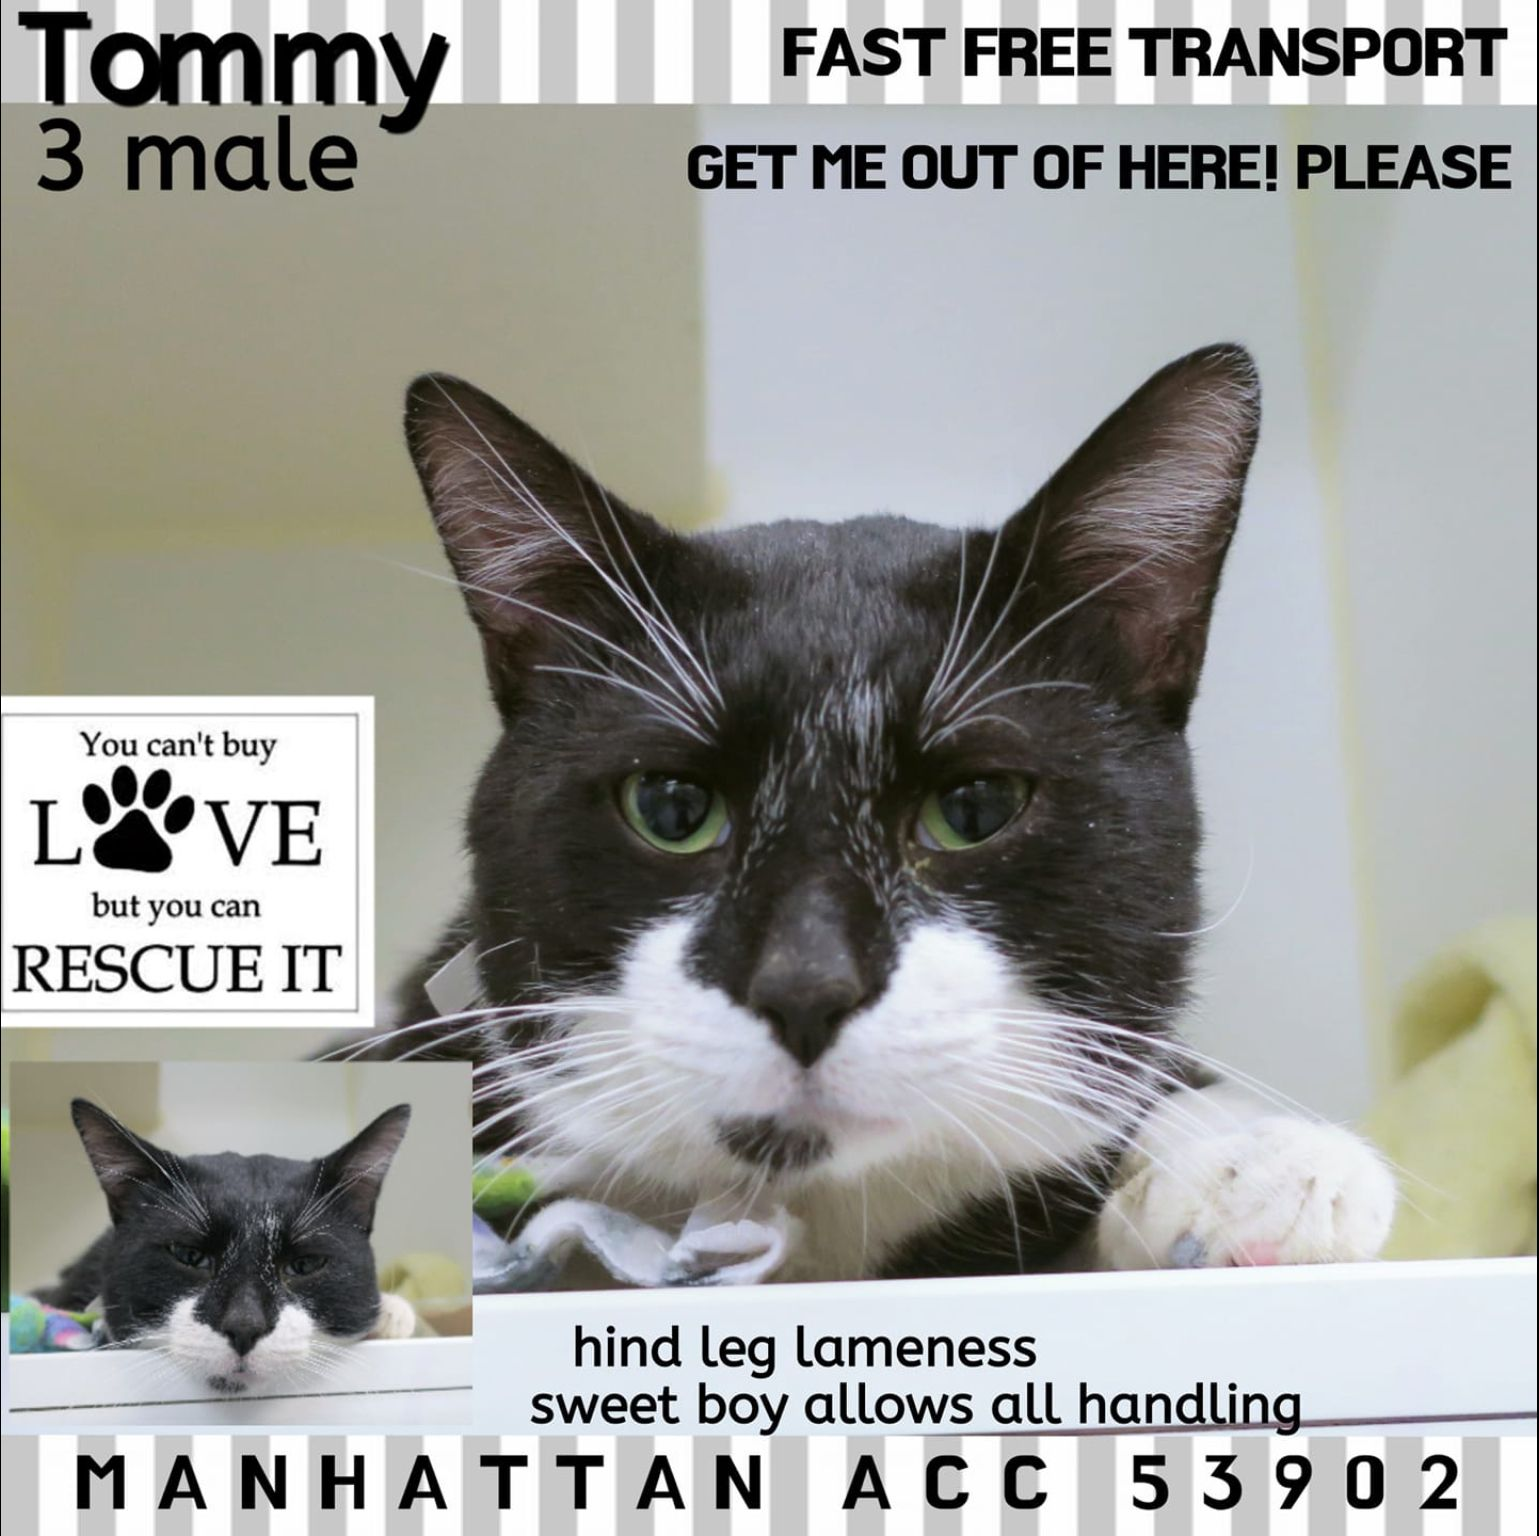 Tommy Pulled By Anjellicle02 07 19 To Die 02 07 19 Cats Cat Today Animal Rescue